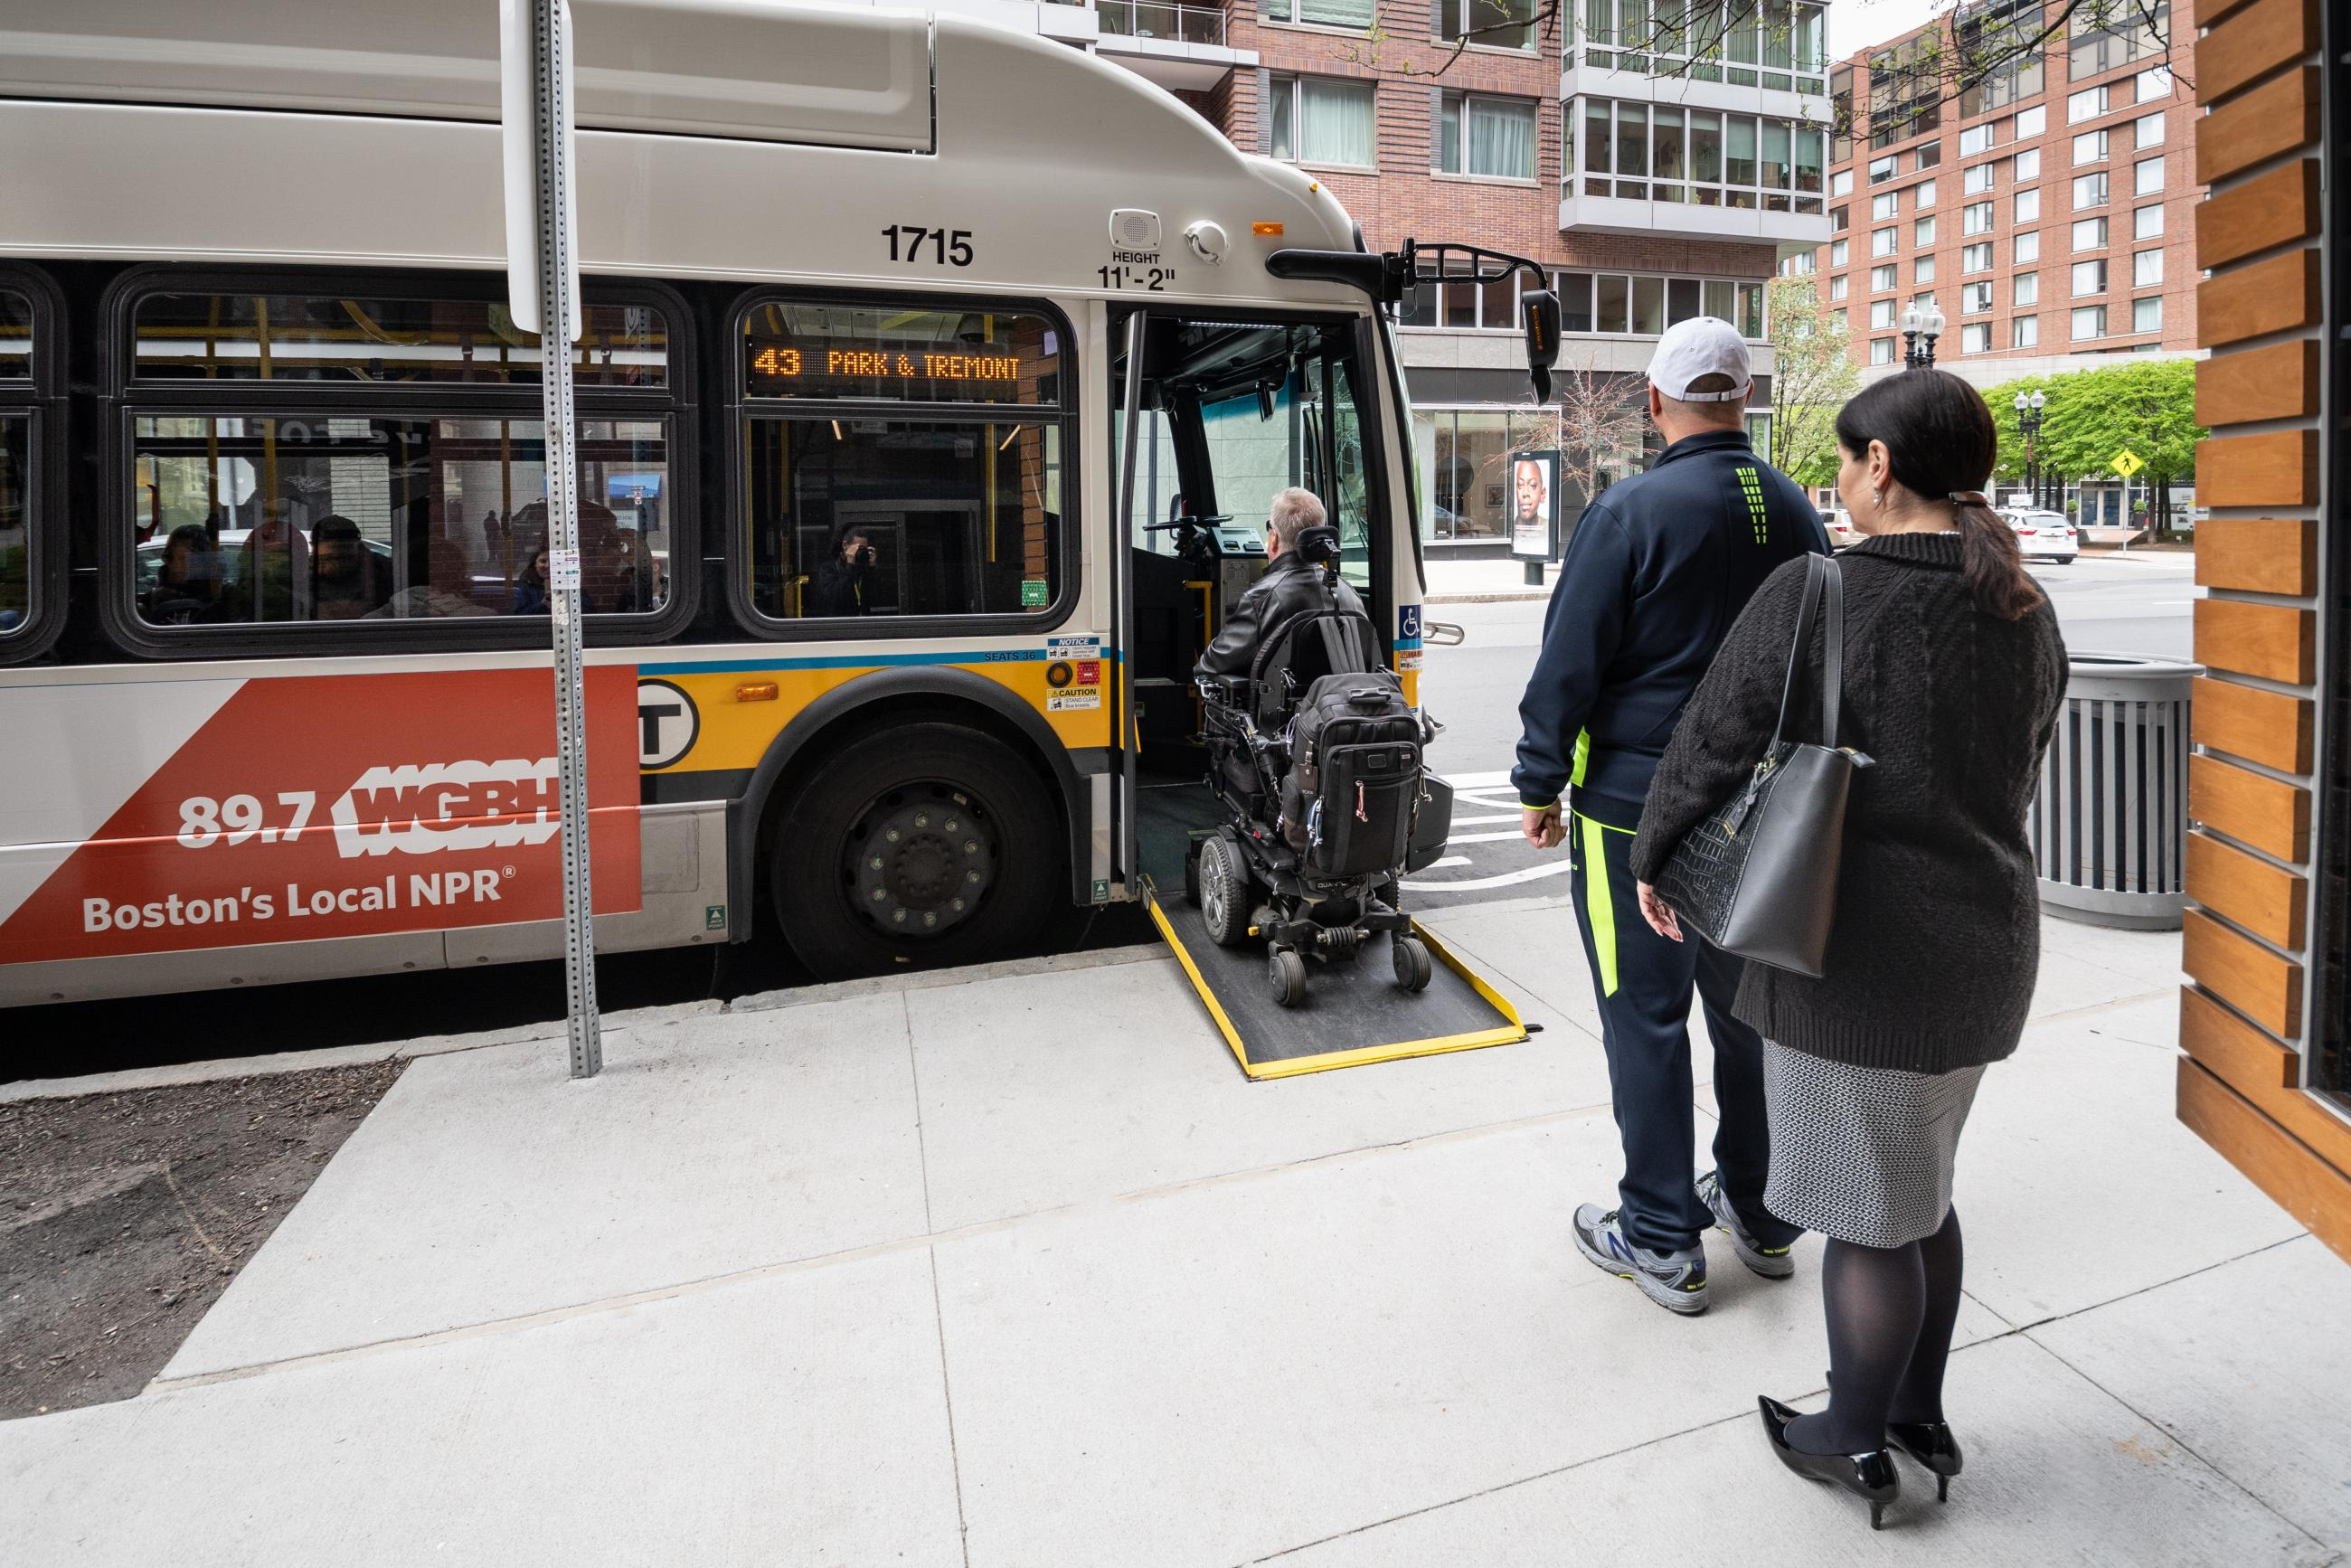 At a bus stop, a rider in a wheeleed mobility device boards the bus via a ramp, as two other riders wait in line behind.